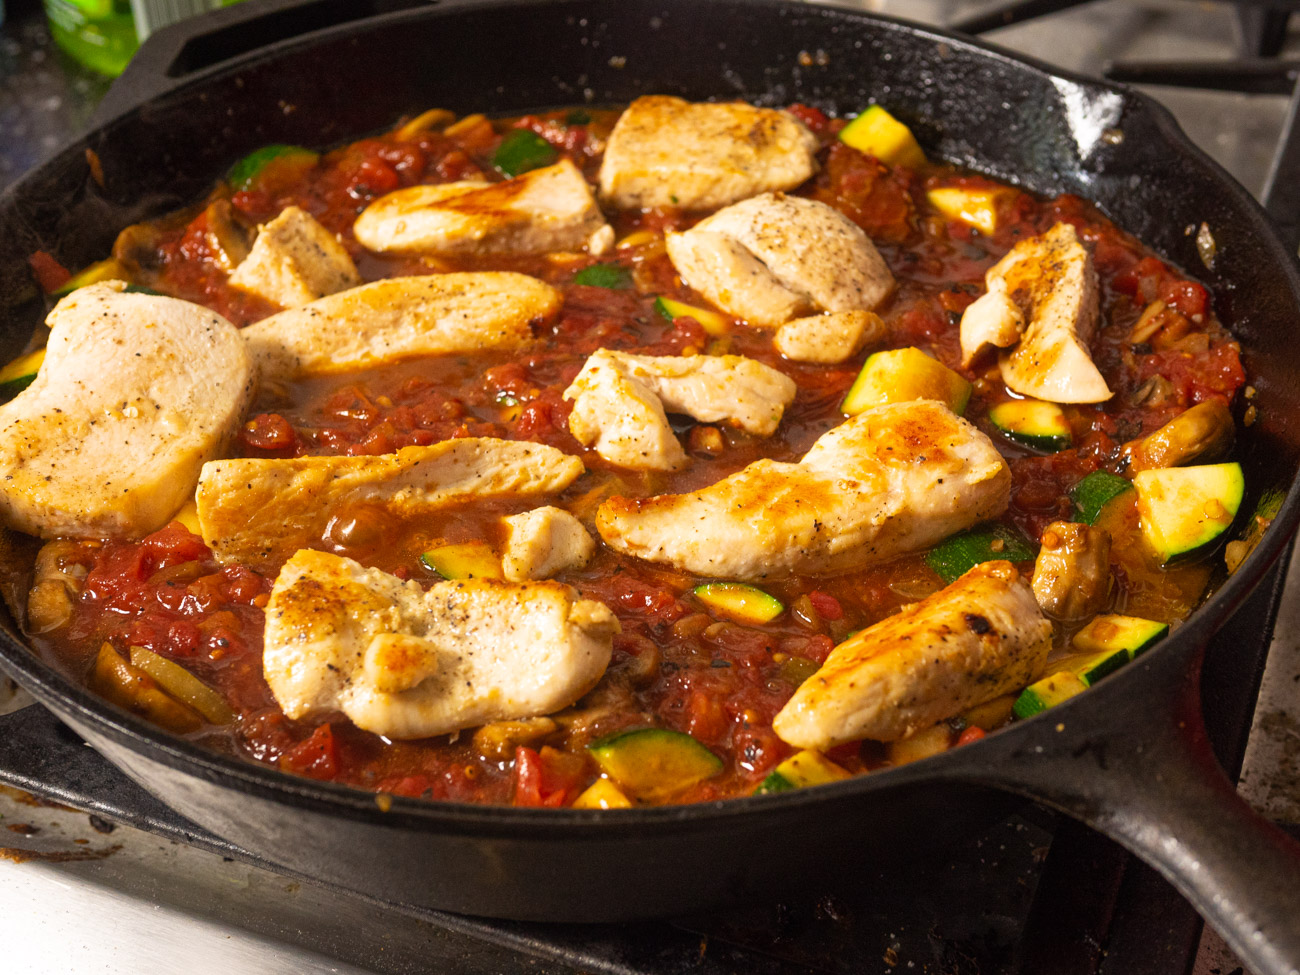 Return chicken to pan and spoon some of the sauce over the top. Cover, reduce heat to medium and cook until chicken is cooked through. Enjoy!